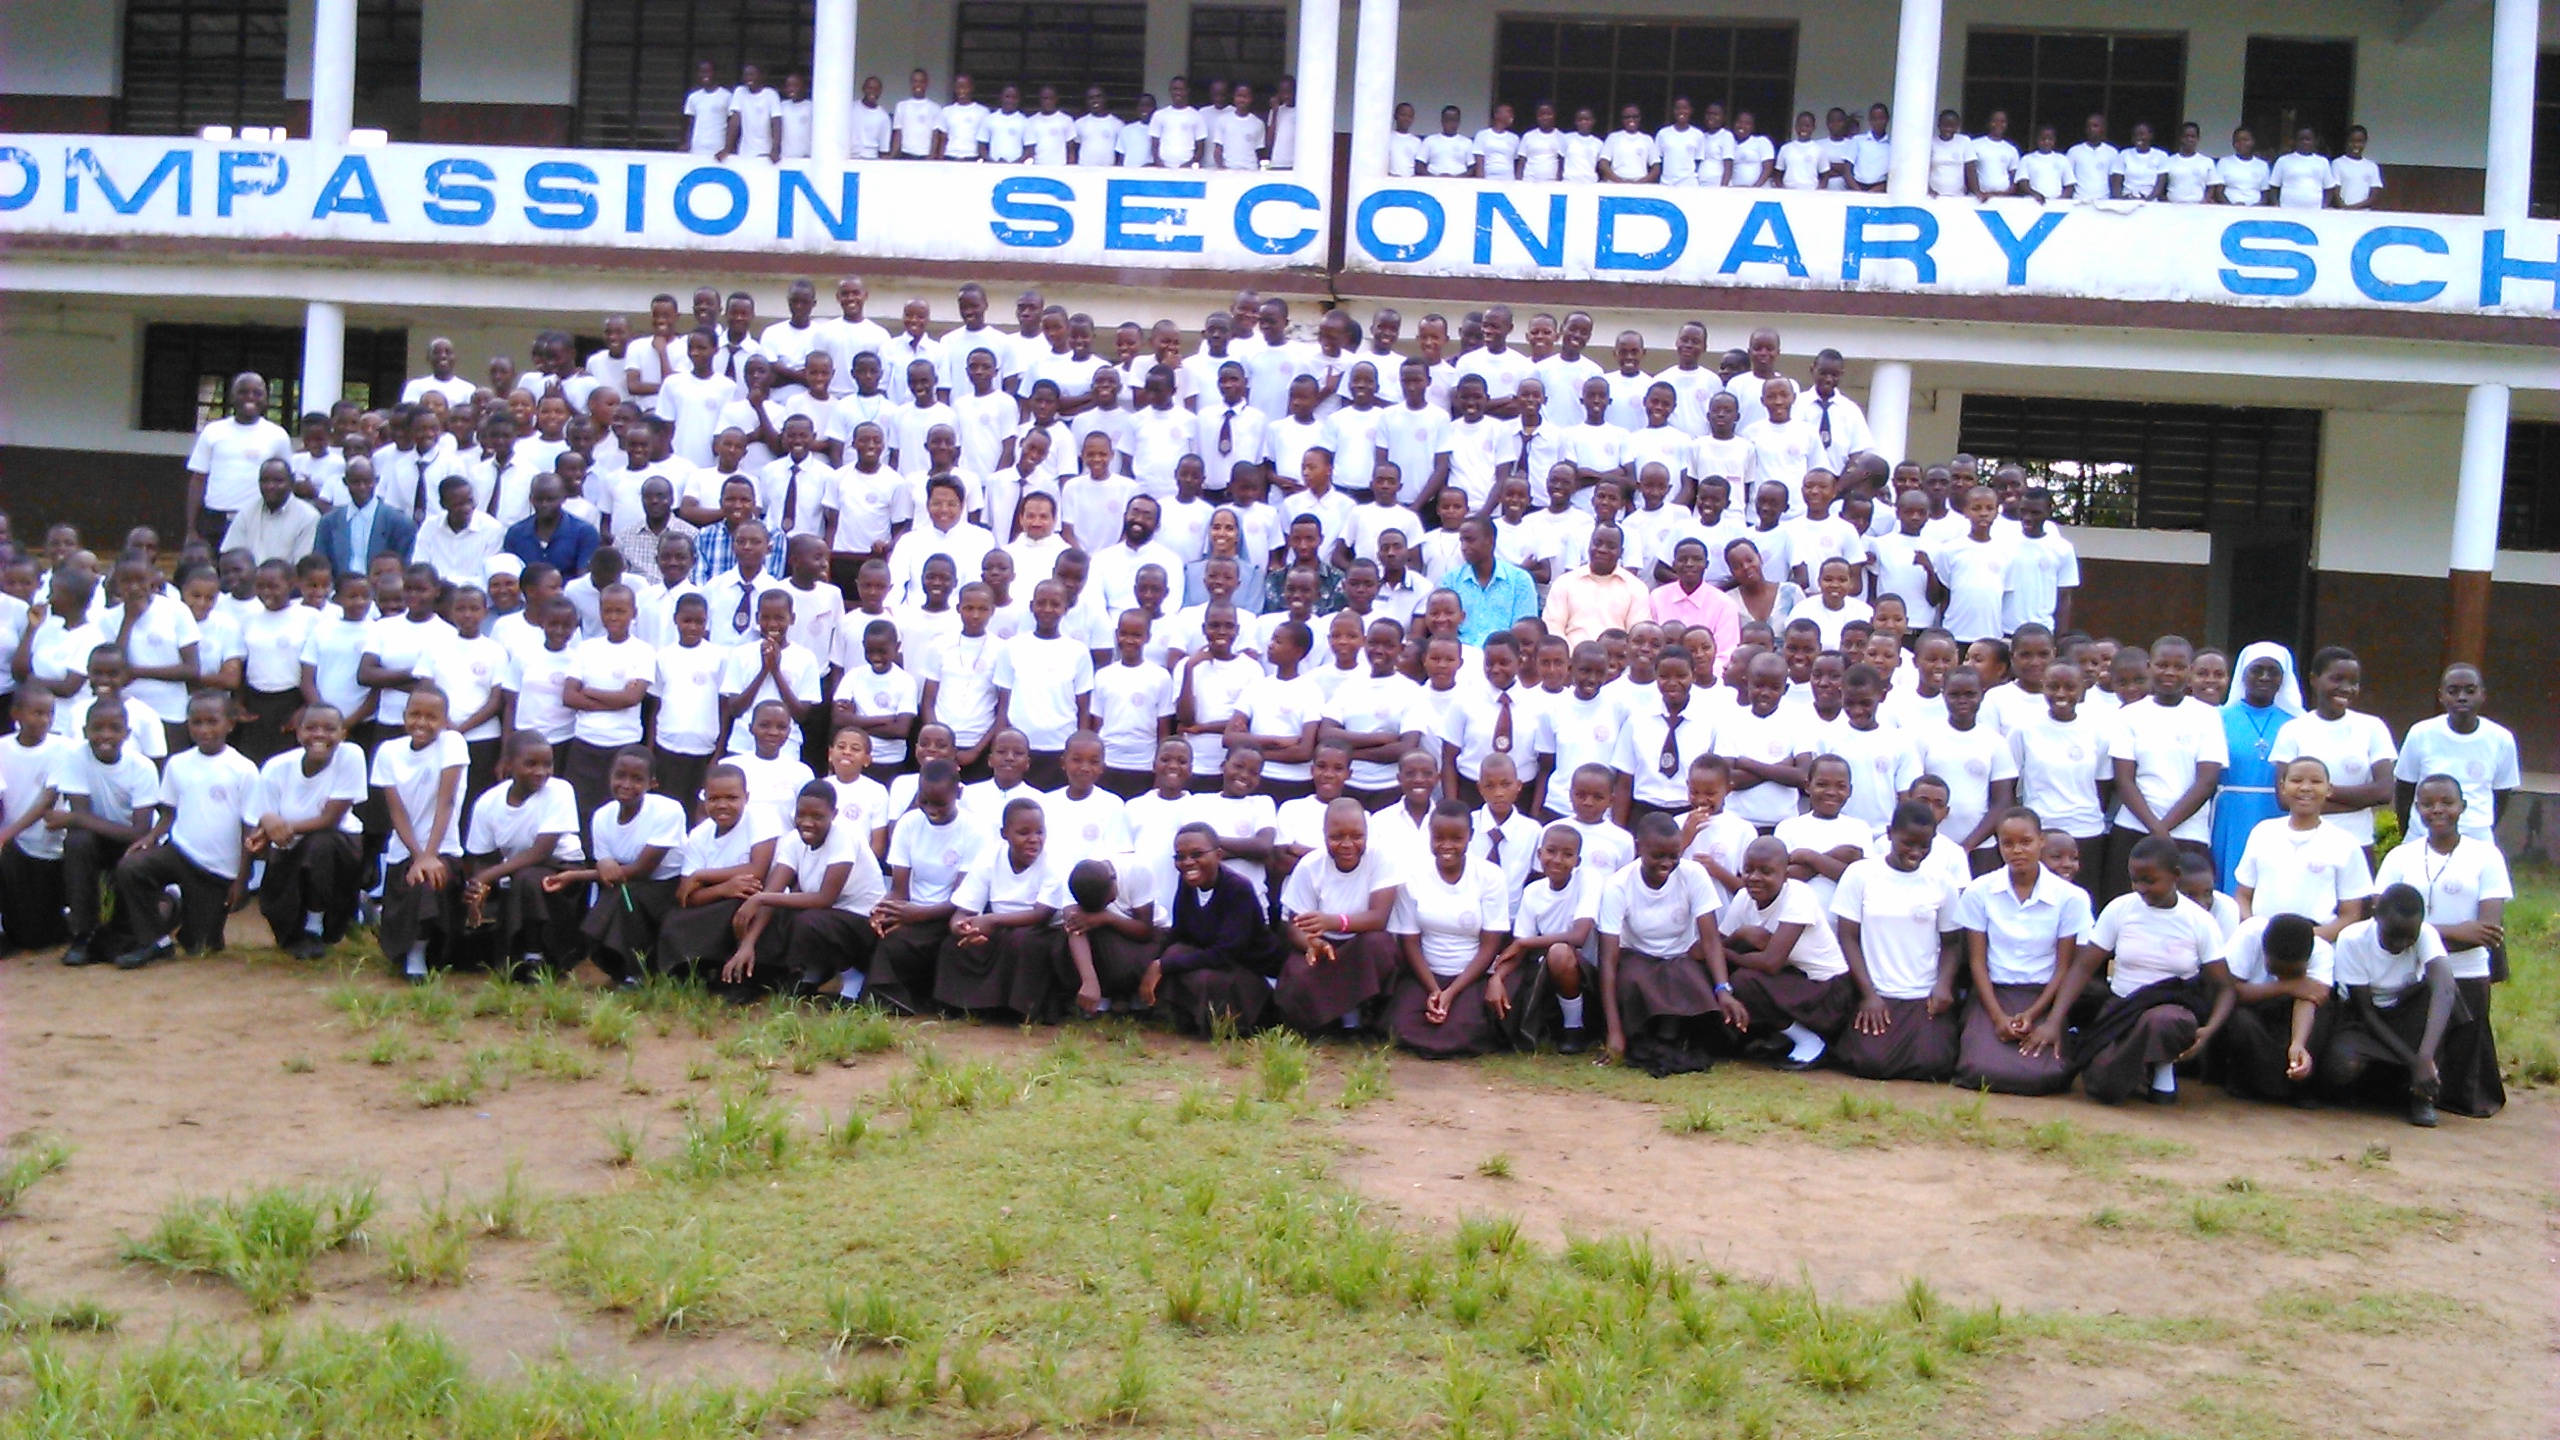 Assumption Secondary School  Students and staff at Msolwa Ujaama in Ifakkara diocese, Tanzania